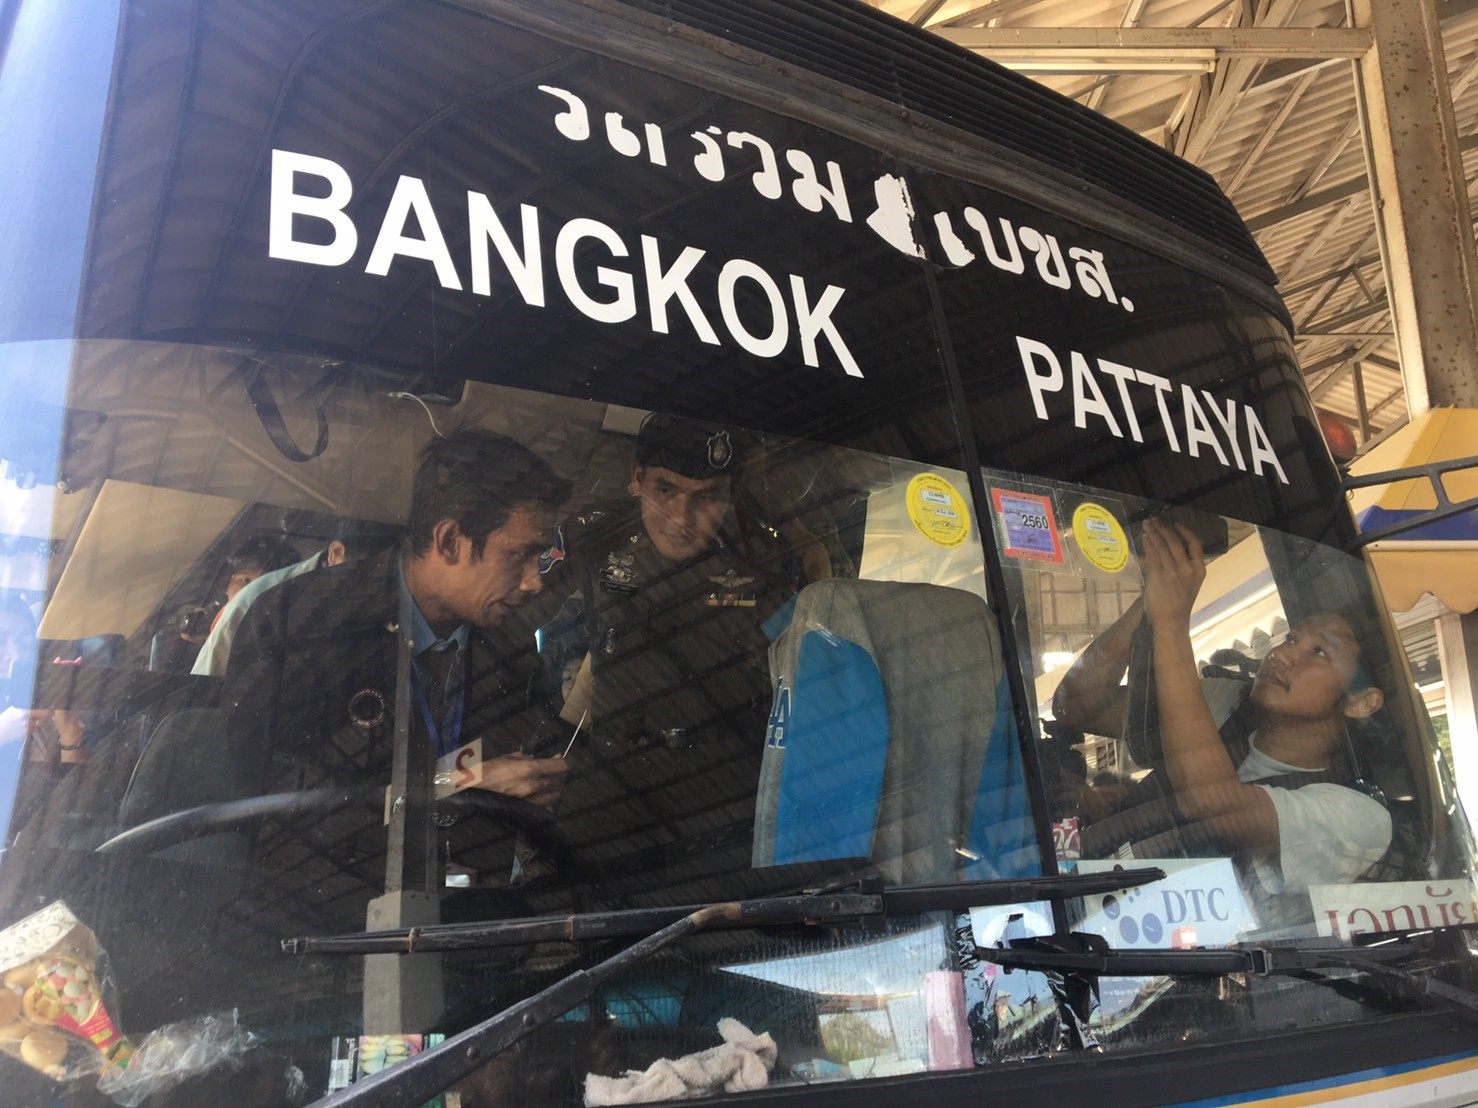 Police inspect a bus prior to it departing for Bangkok